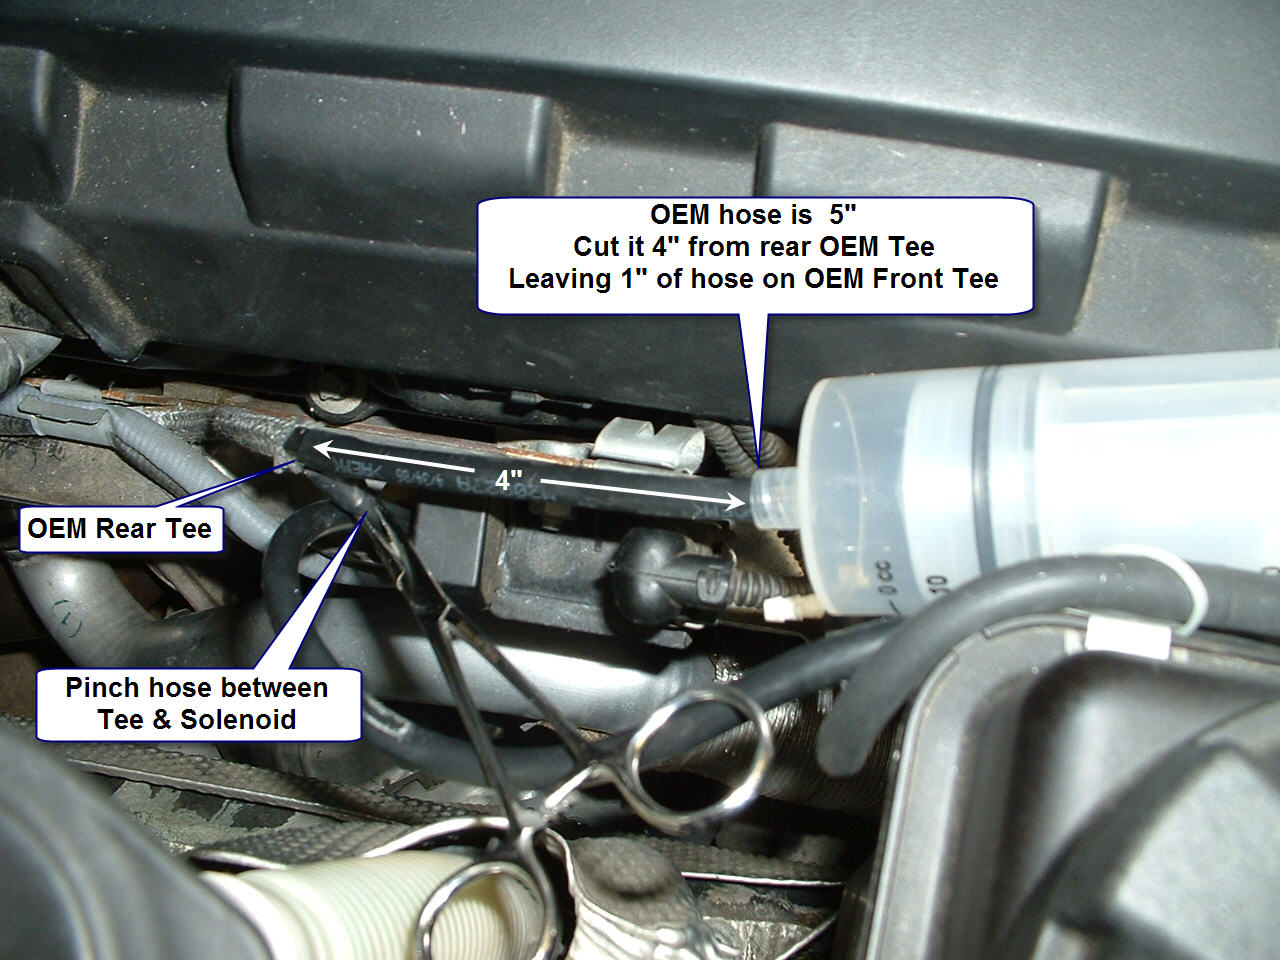 2007 Bmw 335i Fuse D Block Wiring Diagram Explanation Boost Pressure Sensor Location Free Engine Image For User Manual Download 07